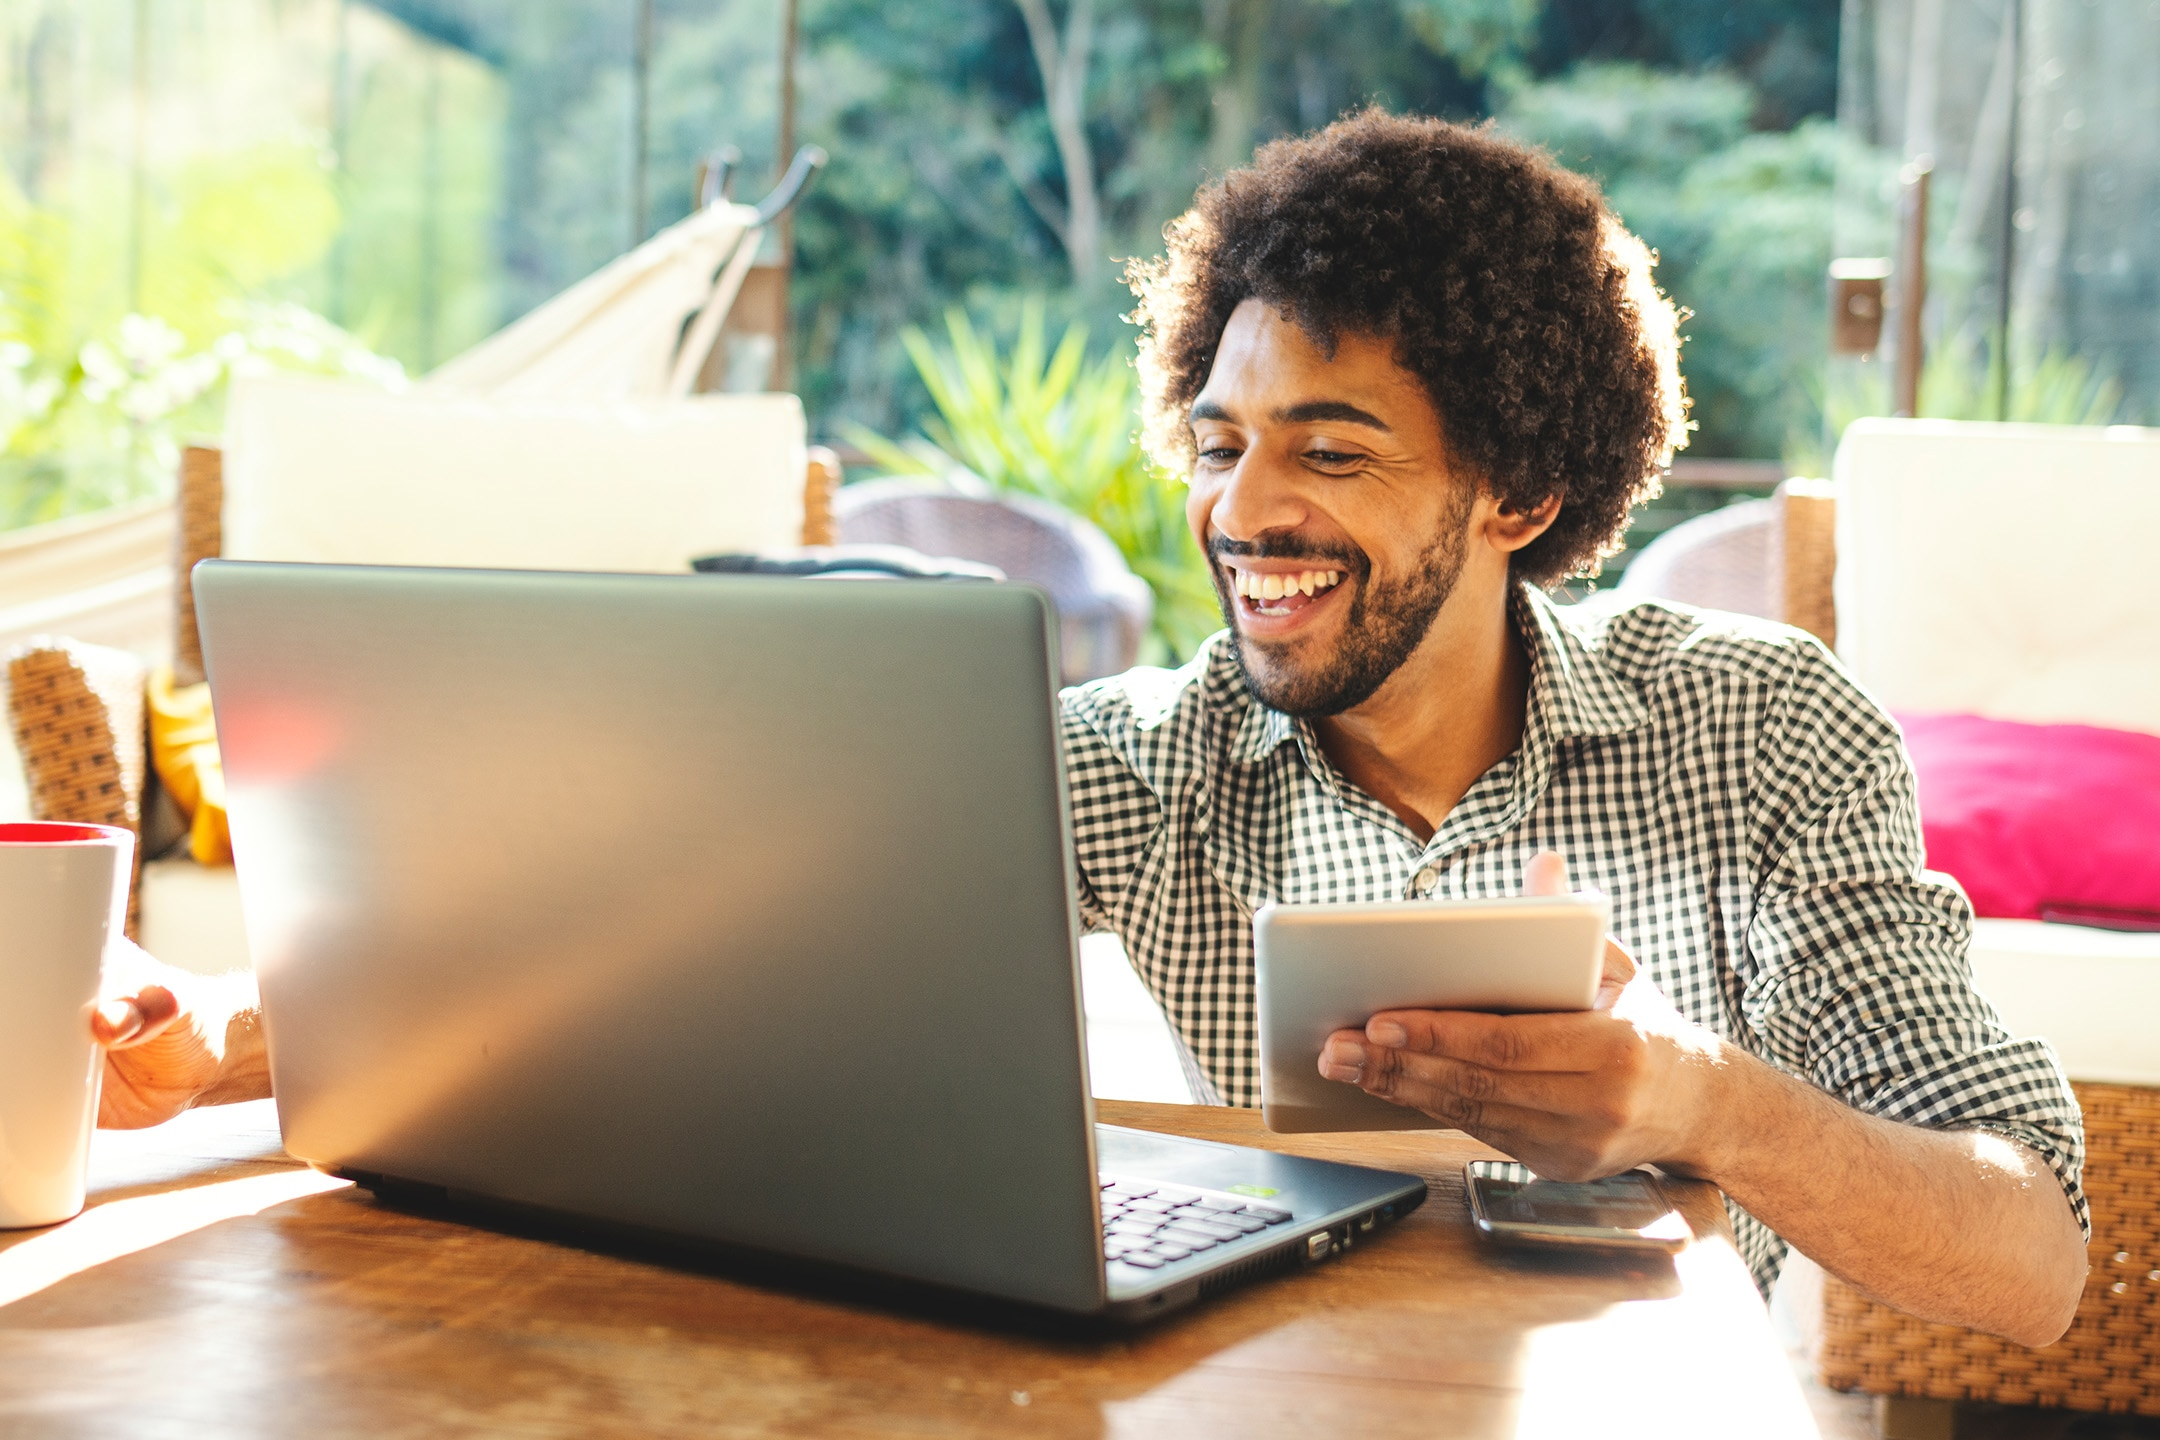 Man working outside on laptop and holding ipad